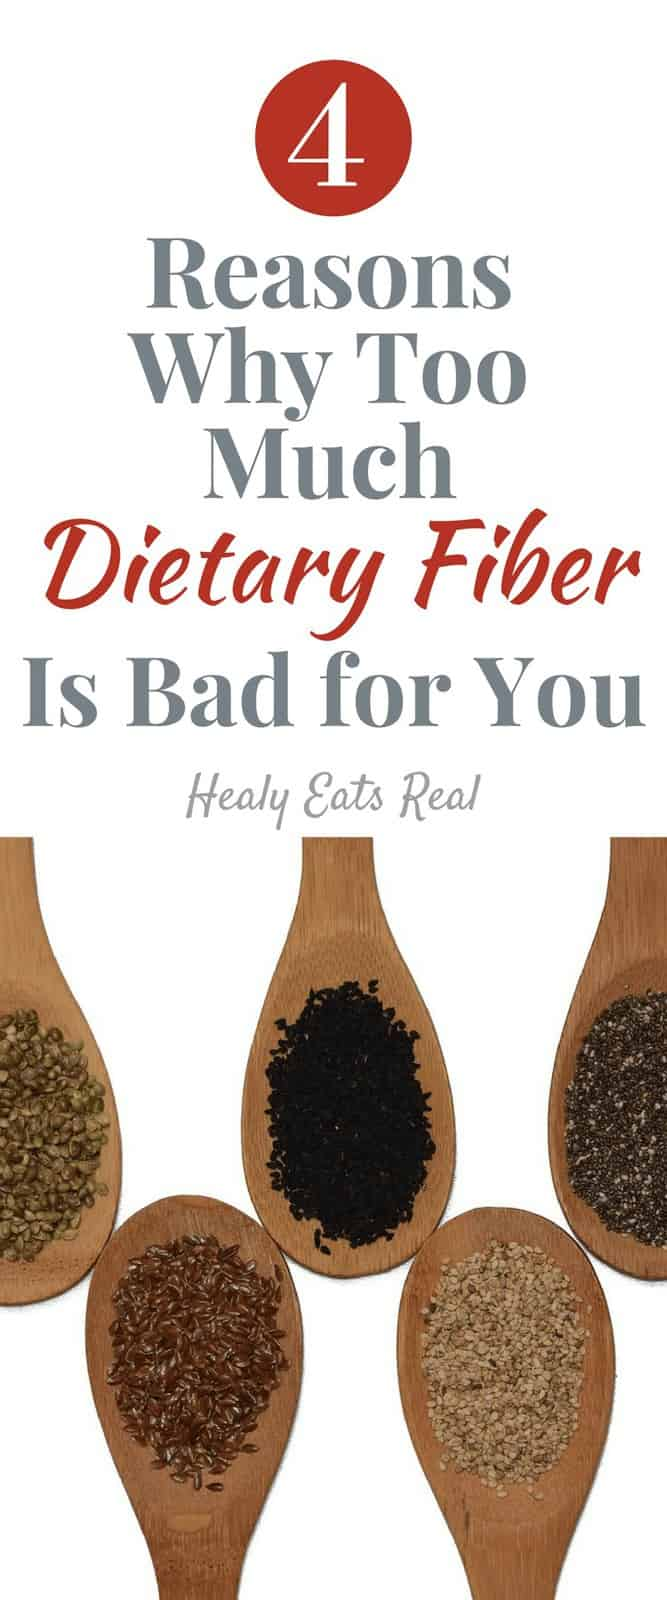 4 Reasons Why Too Much Dietary Fiber Is Bad for You